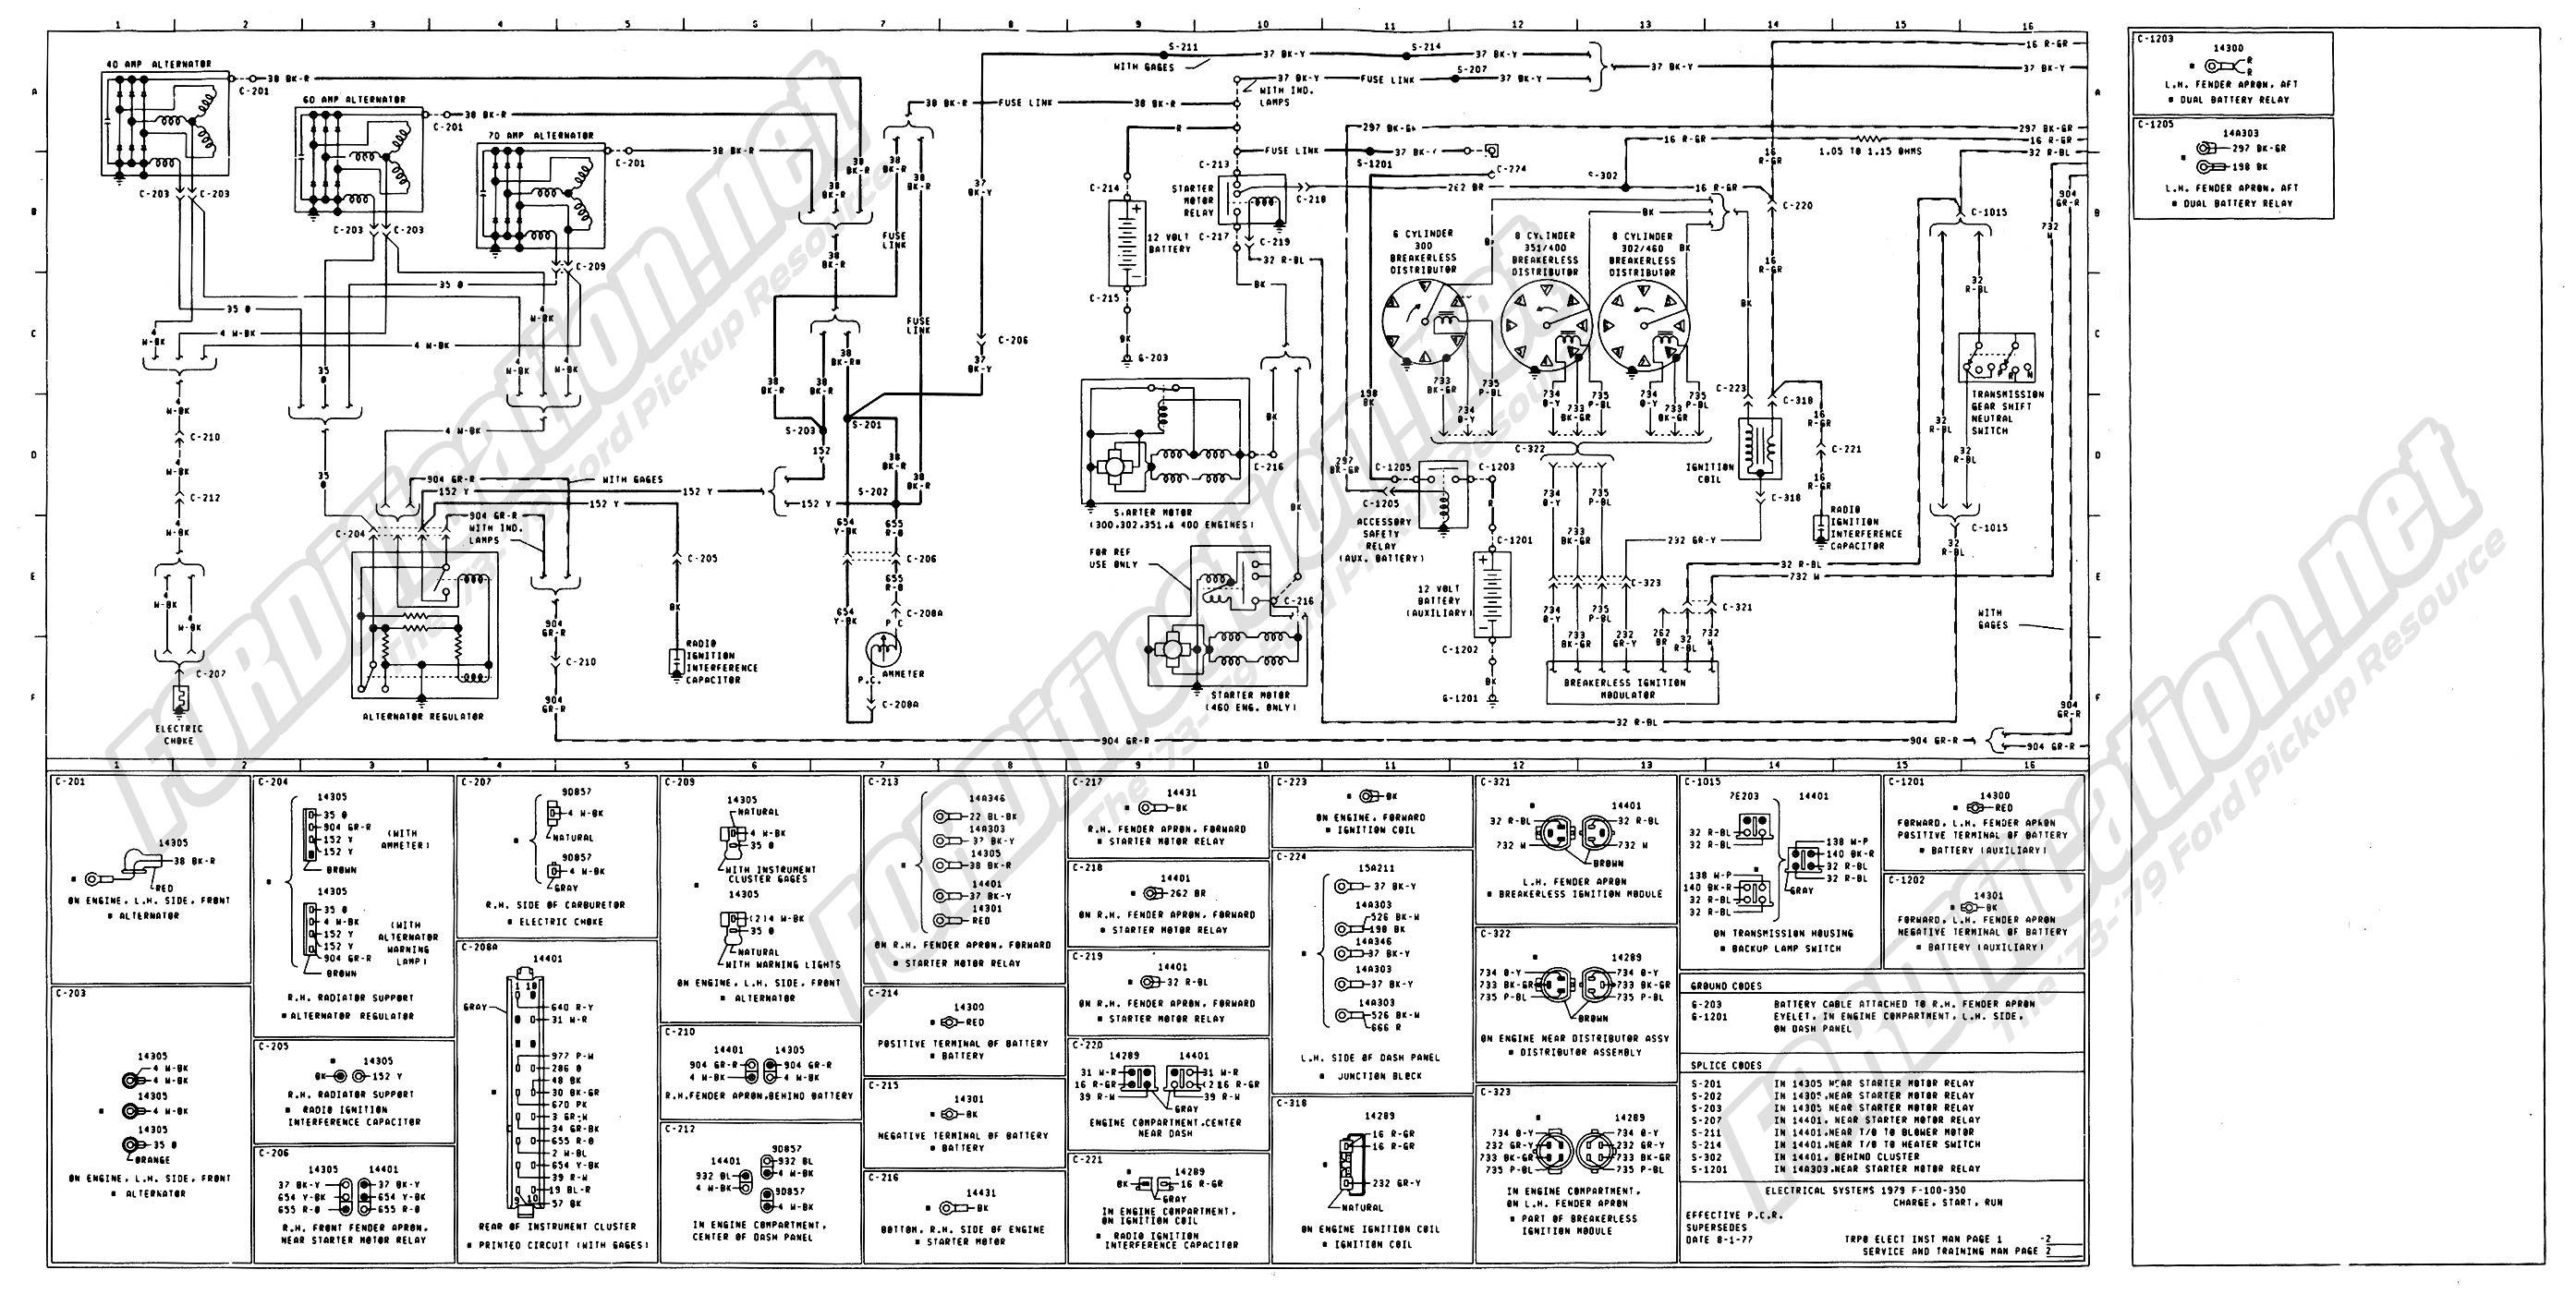 92 F150 Wiring Diagram Free For You 1992 Mustang Fuel Pump 4x4 Schematic Schematics Rh Ksefanzone Com Ford